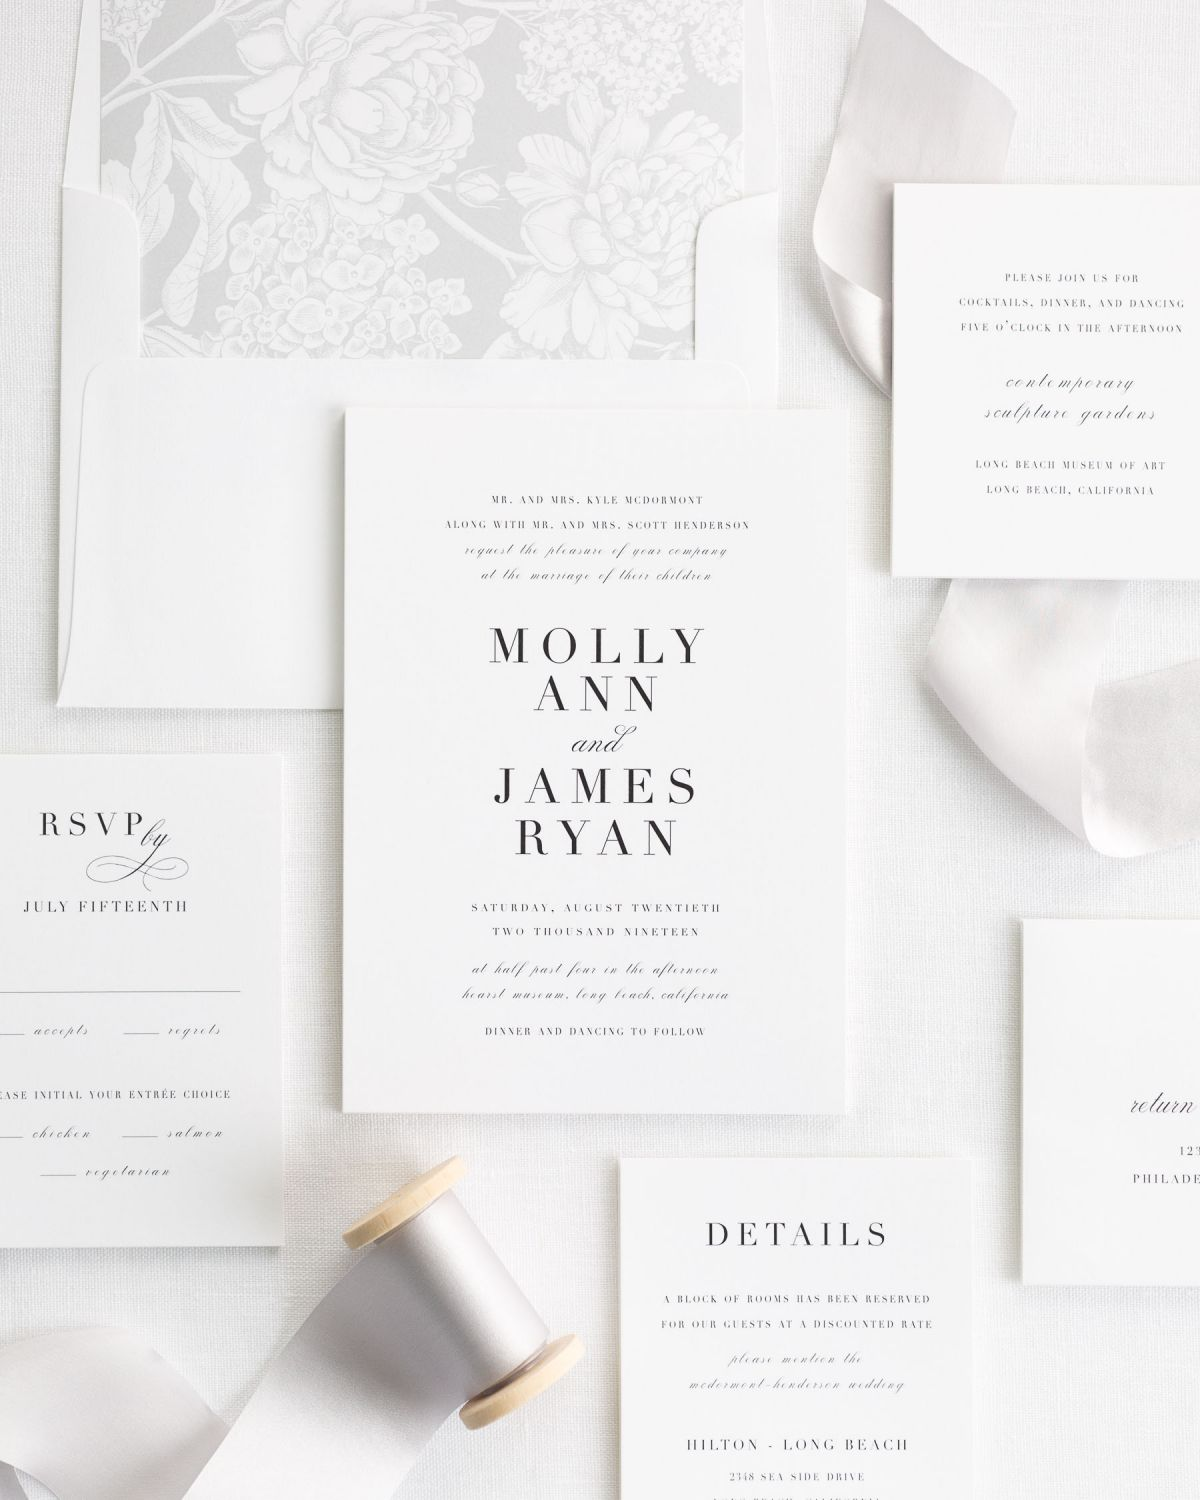 Simple and Classic Wedding Invitations with a in silver gray with a floral liner